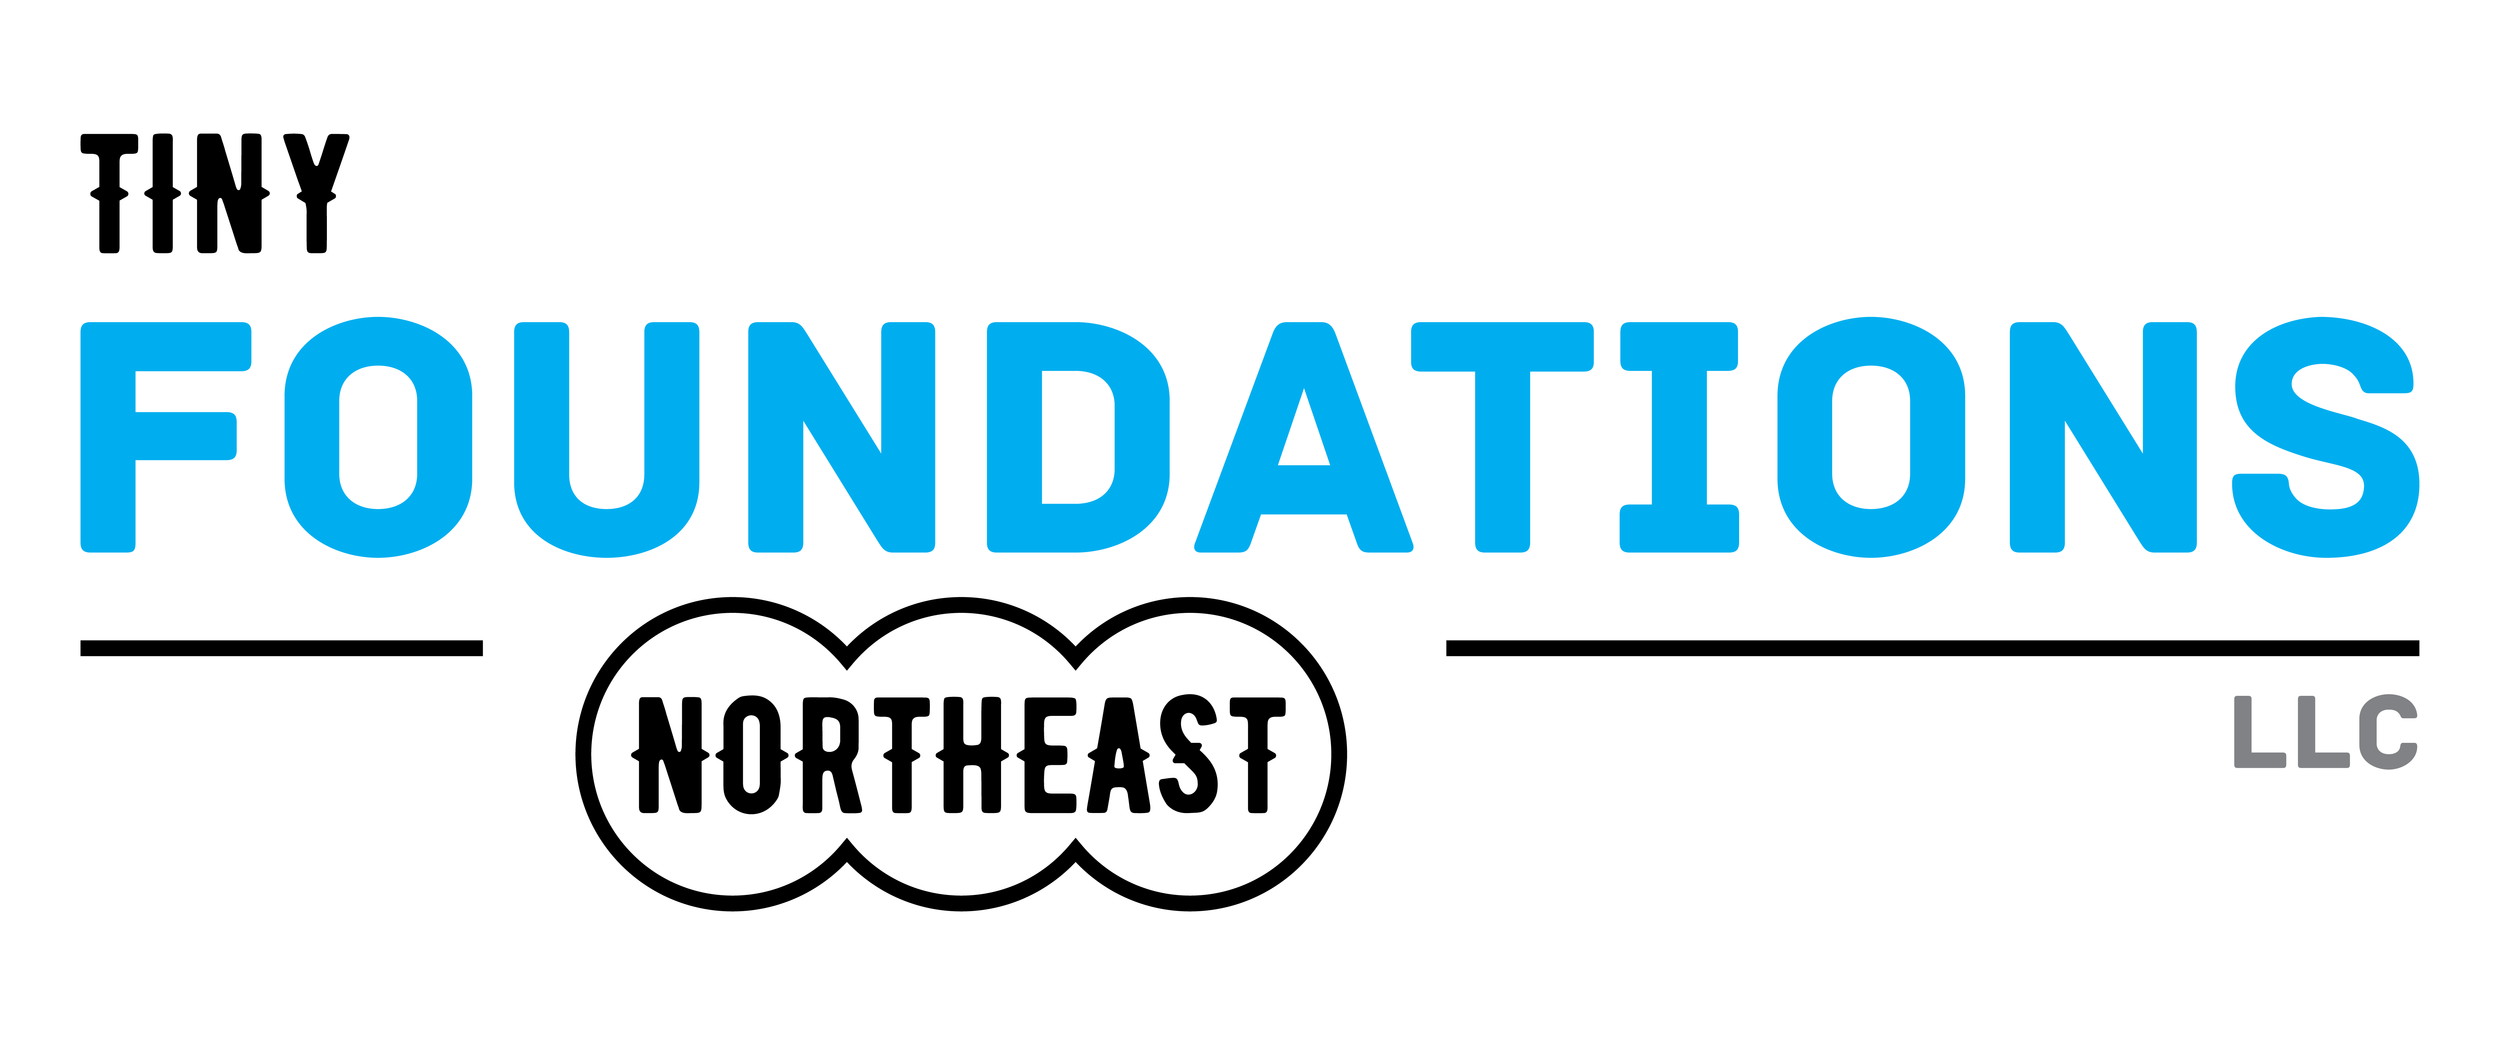 tiny-foundations-northeast.png